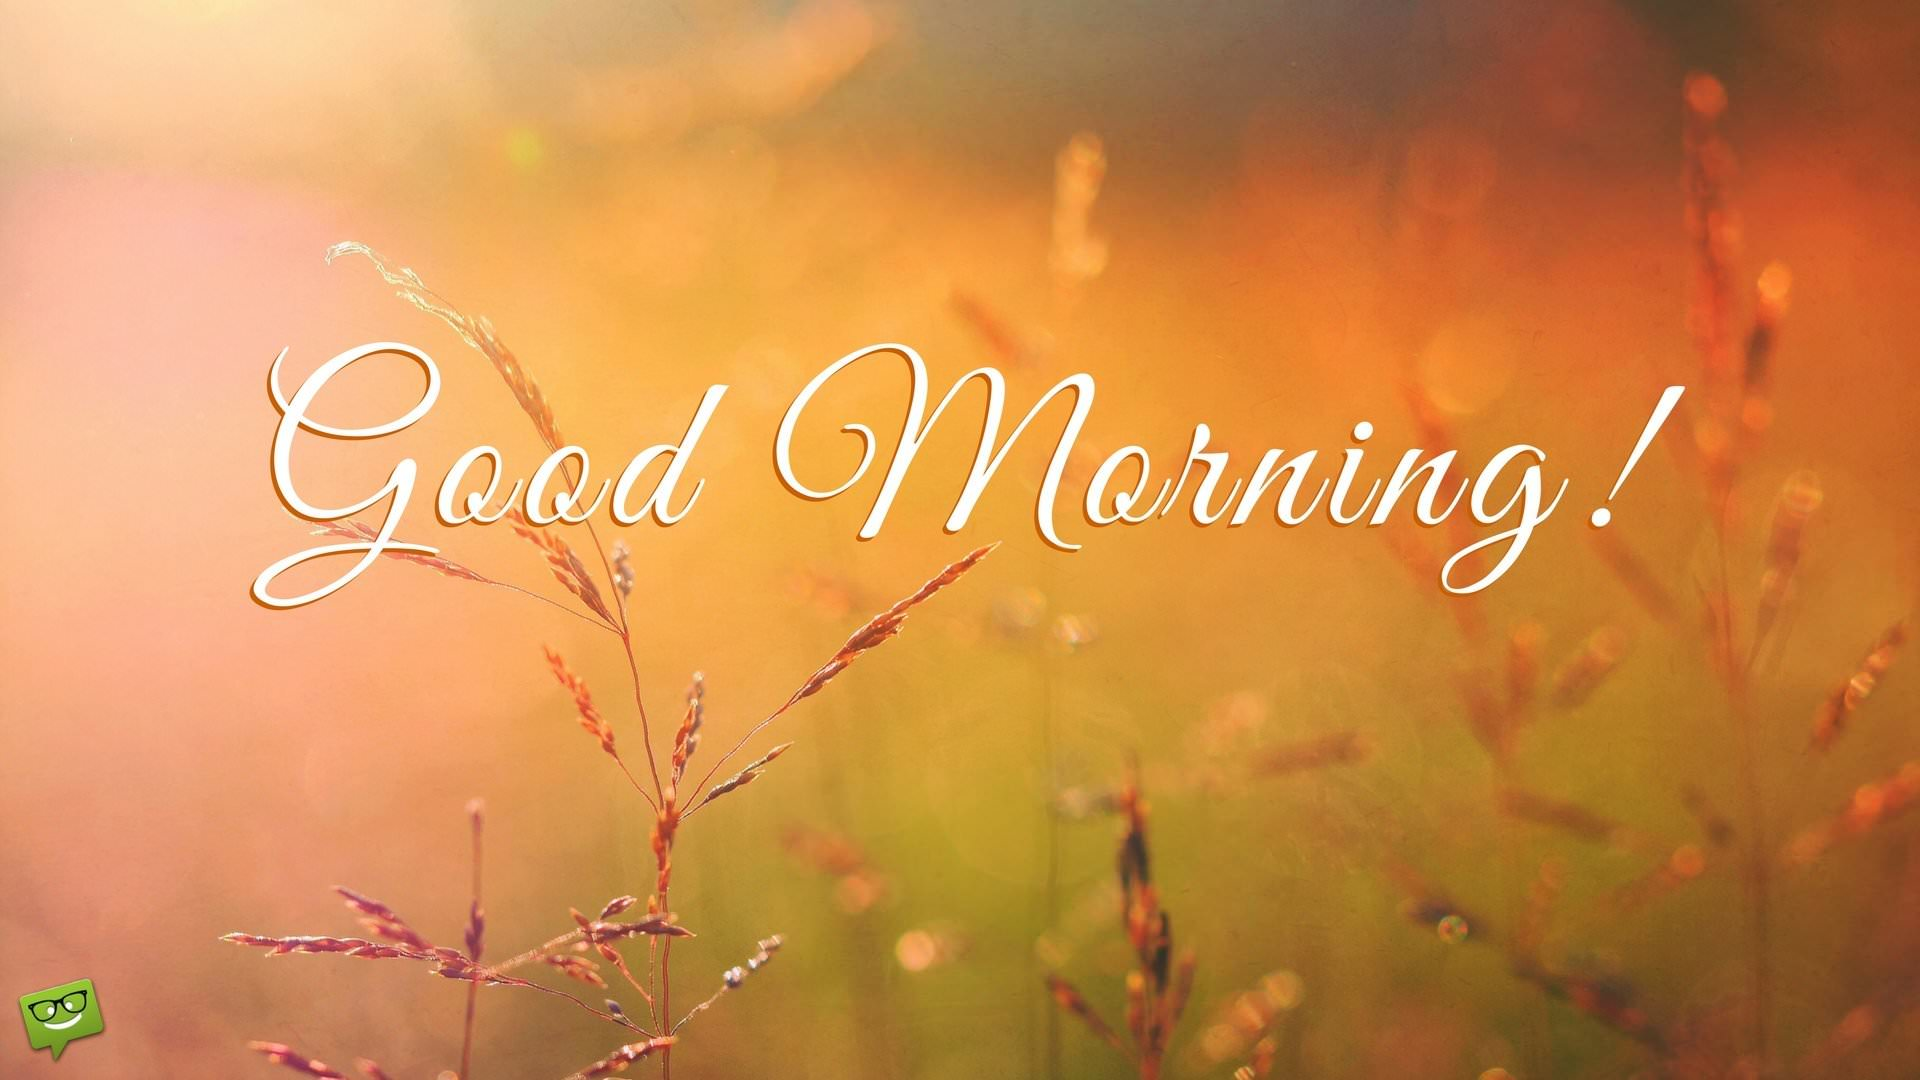 Good Morning Everyone Letter Awesome Good Morning Quotes For